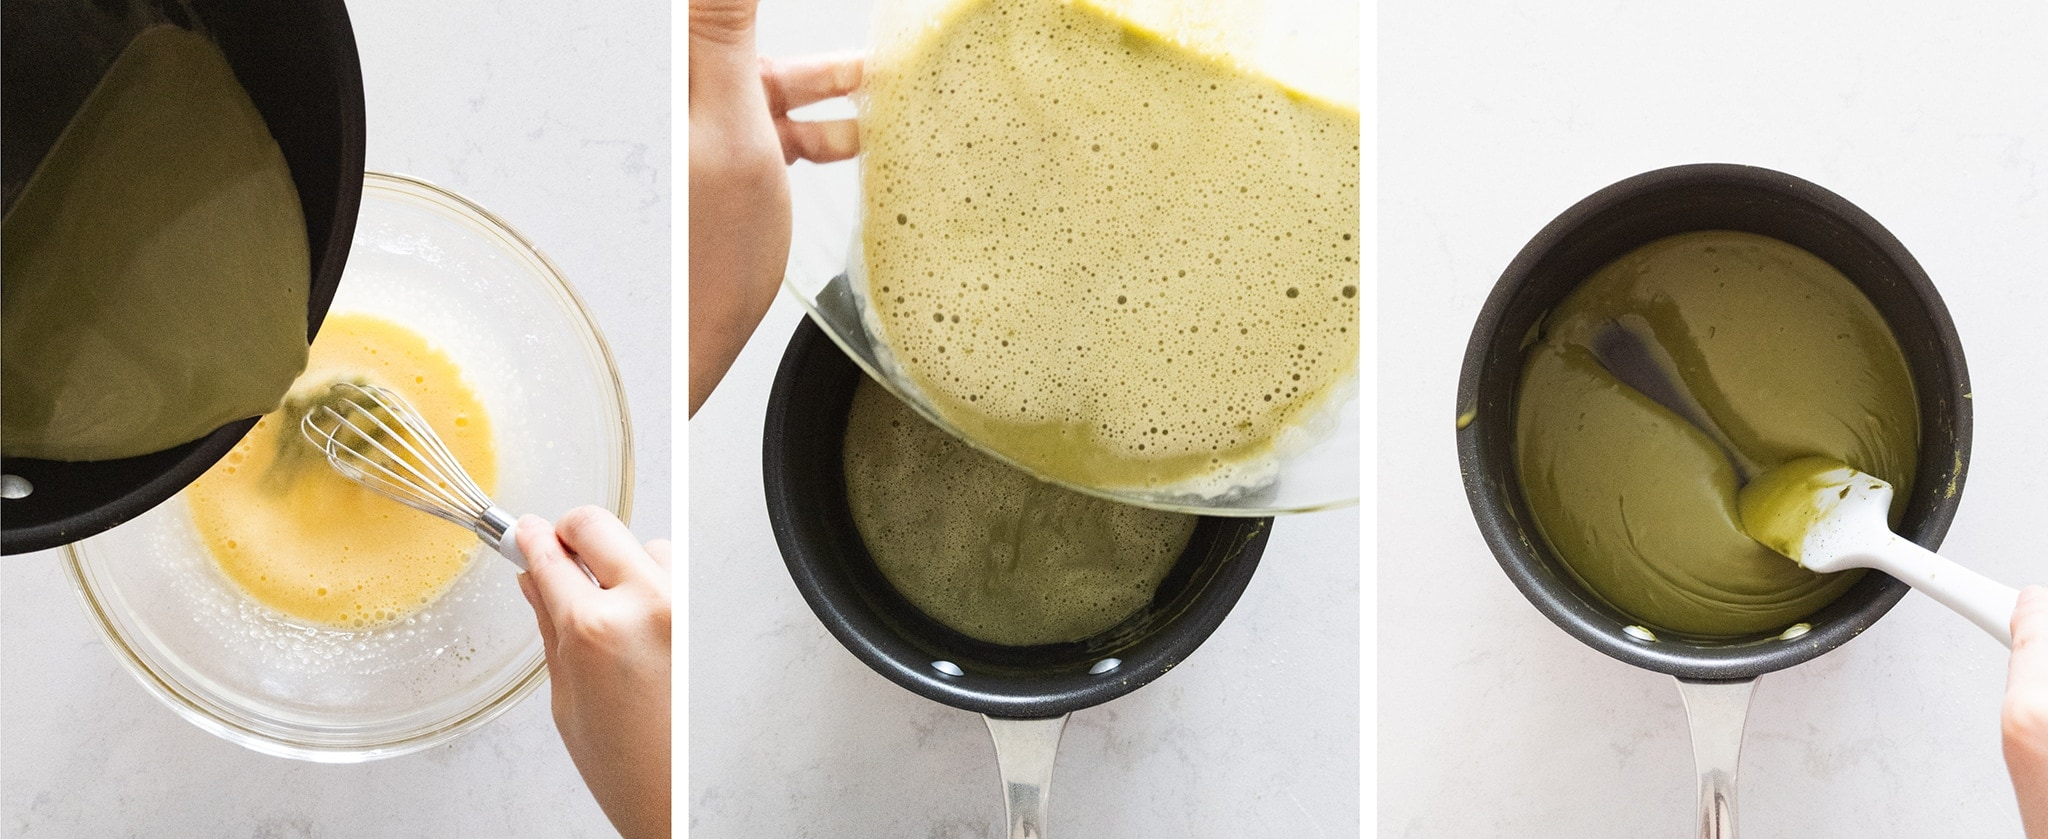 Making matcha pastry cream in a pot